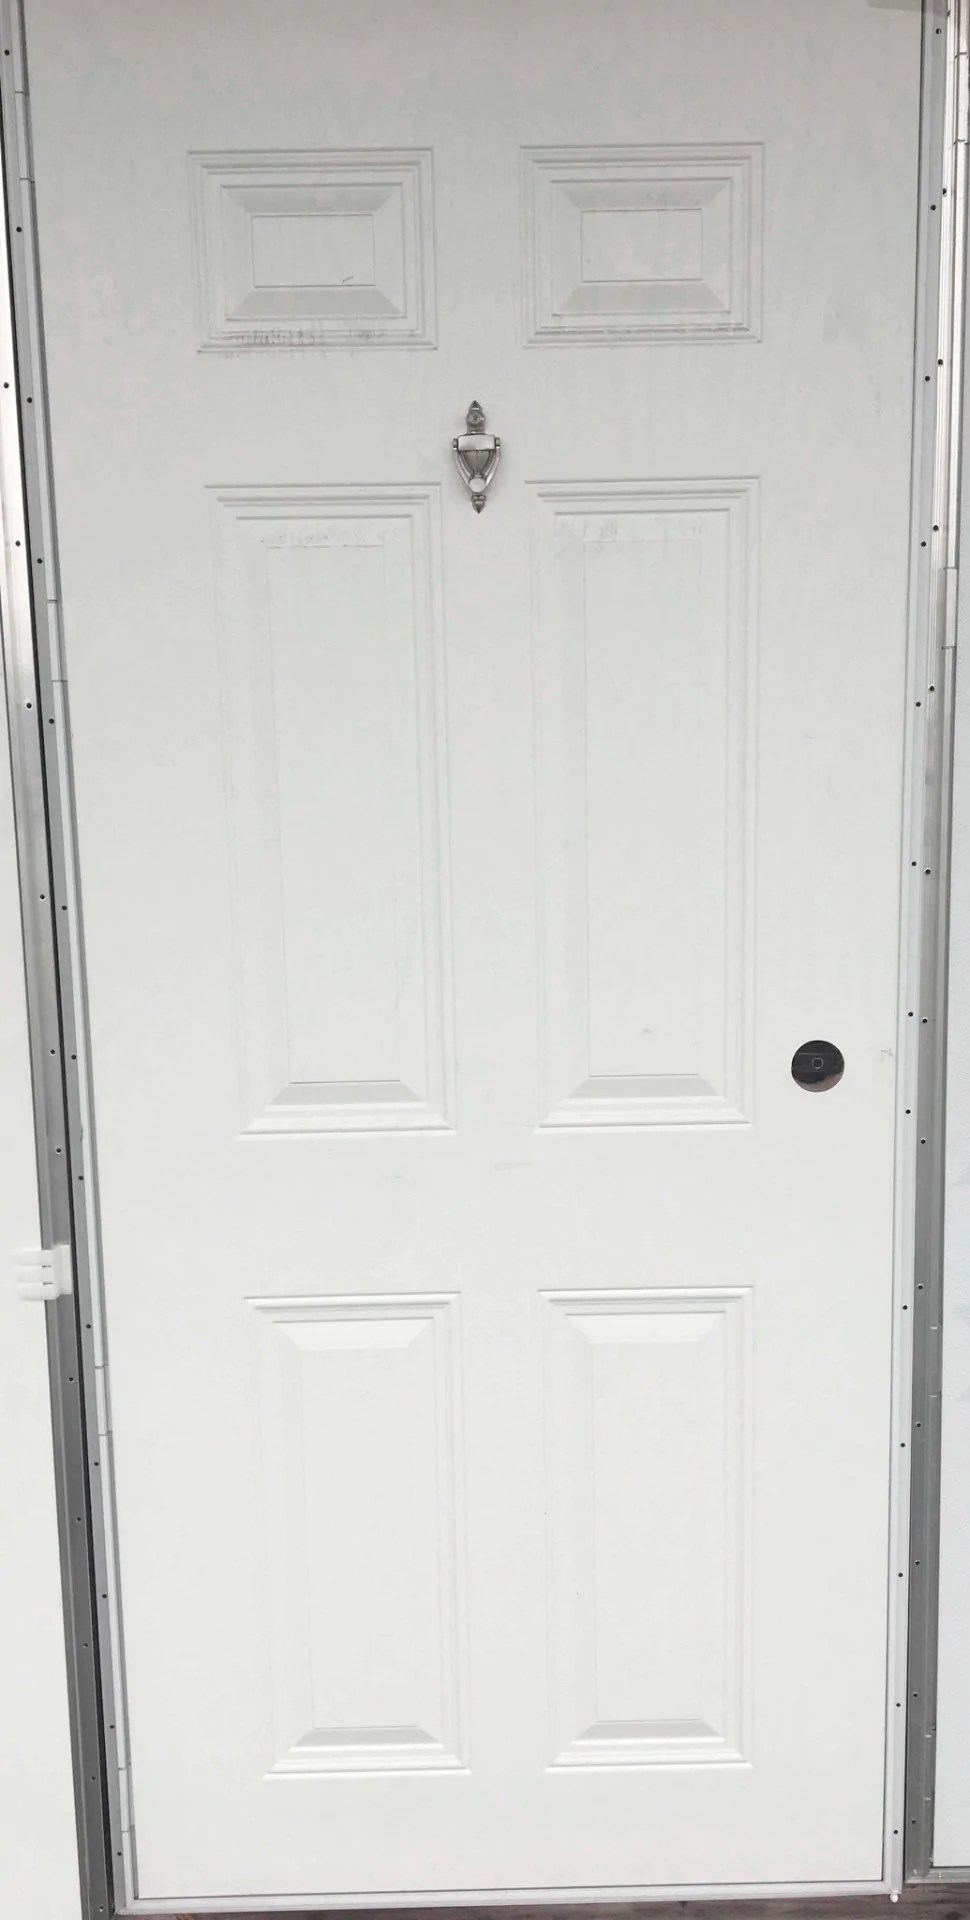 Inspiring Knocker Mobile Home Outswing Exterior Door Installation Light Cottage Outswing Exterior Door Viewer Elixir Exterior Outswing Panel Steel Door Elixir Six Panel Exterior Outswing Door houzz 01 Outswing Exterior Door